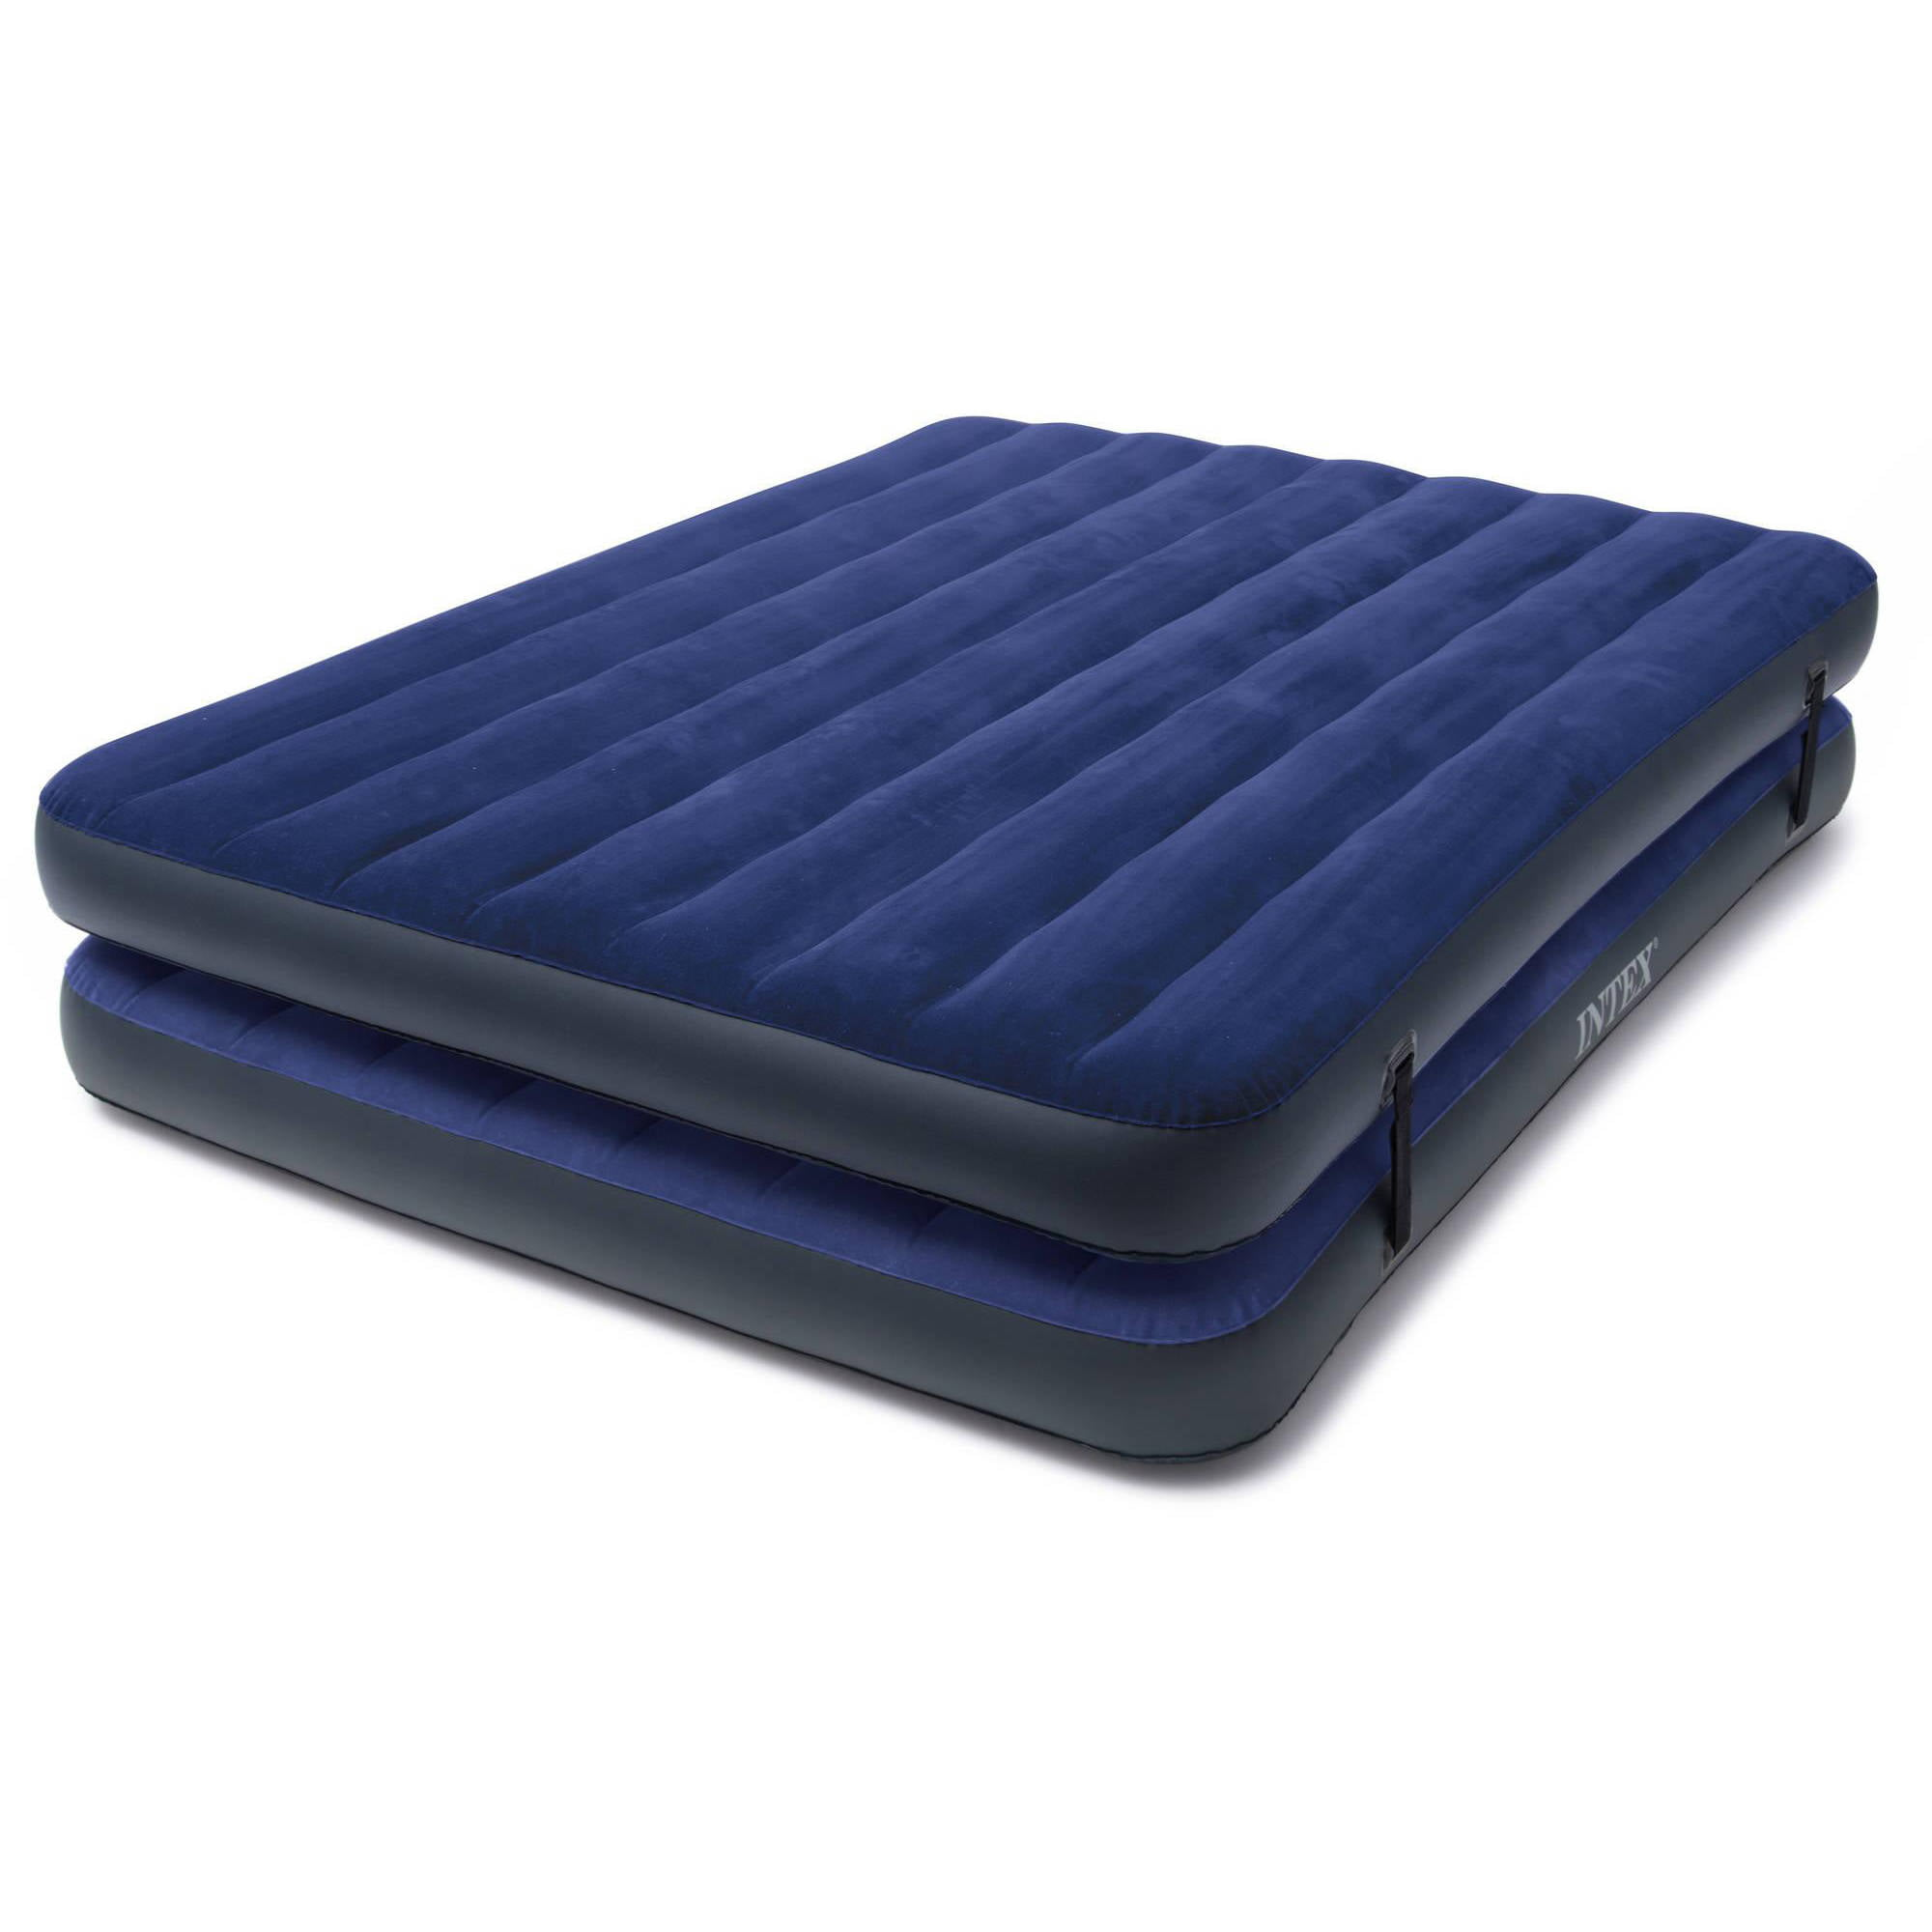 intex pin inflatable mattress airbed air bed queen classic downy